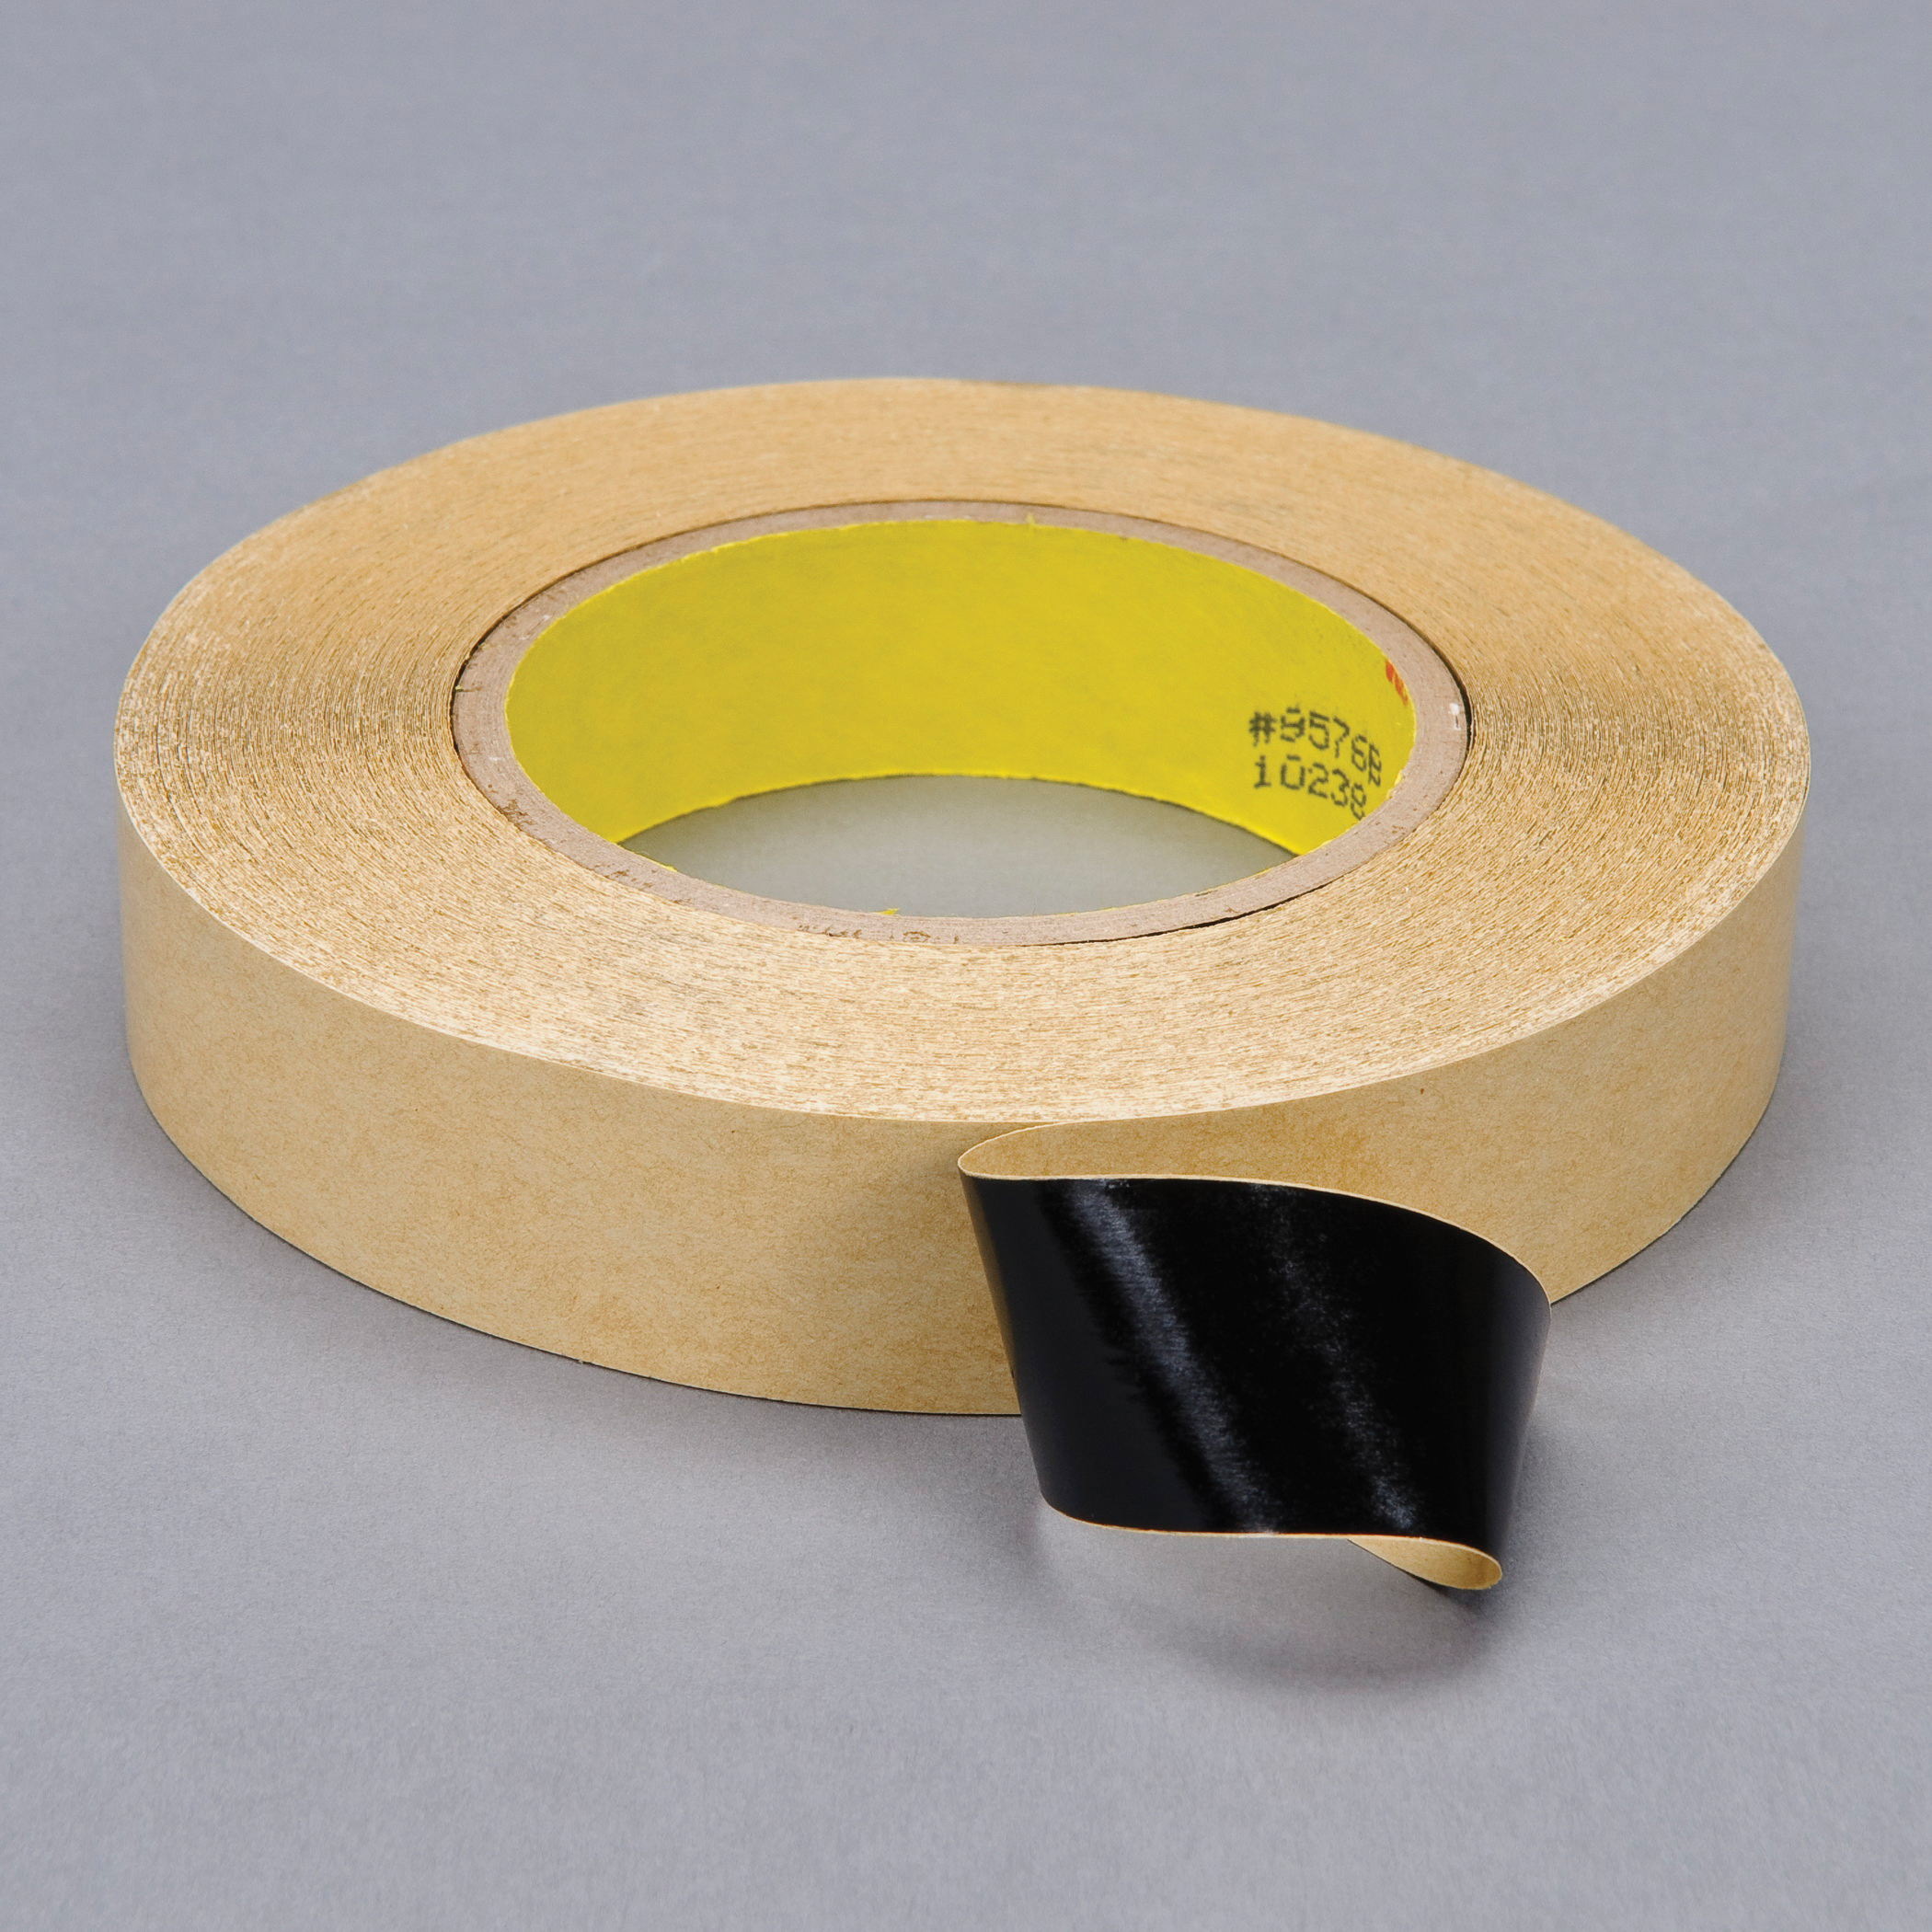 3M™ 021200-40477 Double Coated Tape, 60 yd L x 2 in W, 4 mil THK, 400HT Acrylic Adhesive, Polypropylene Backing, Black